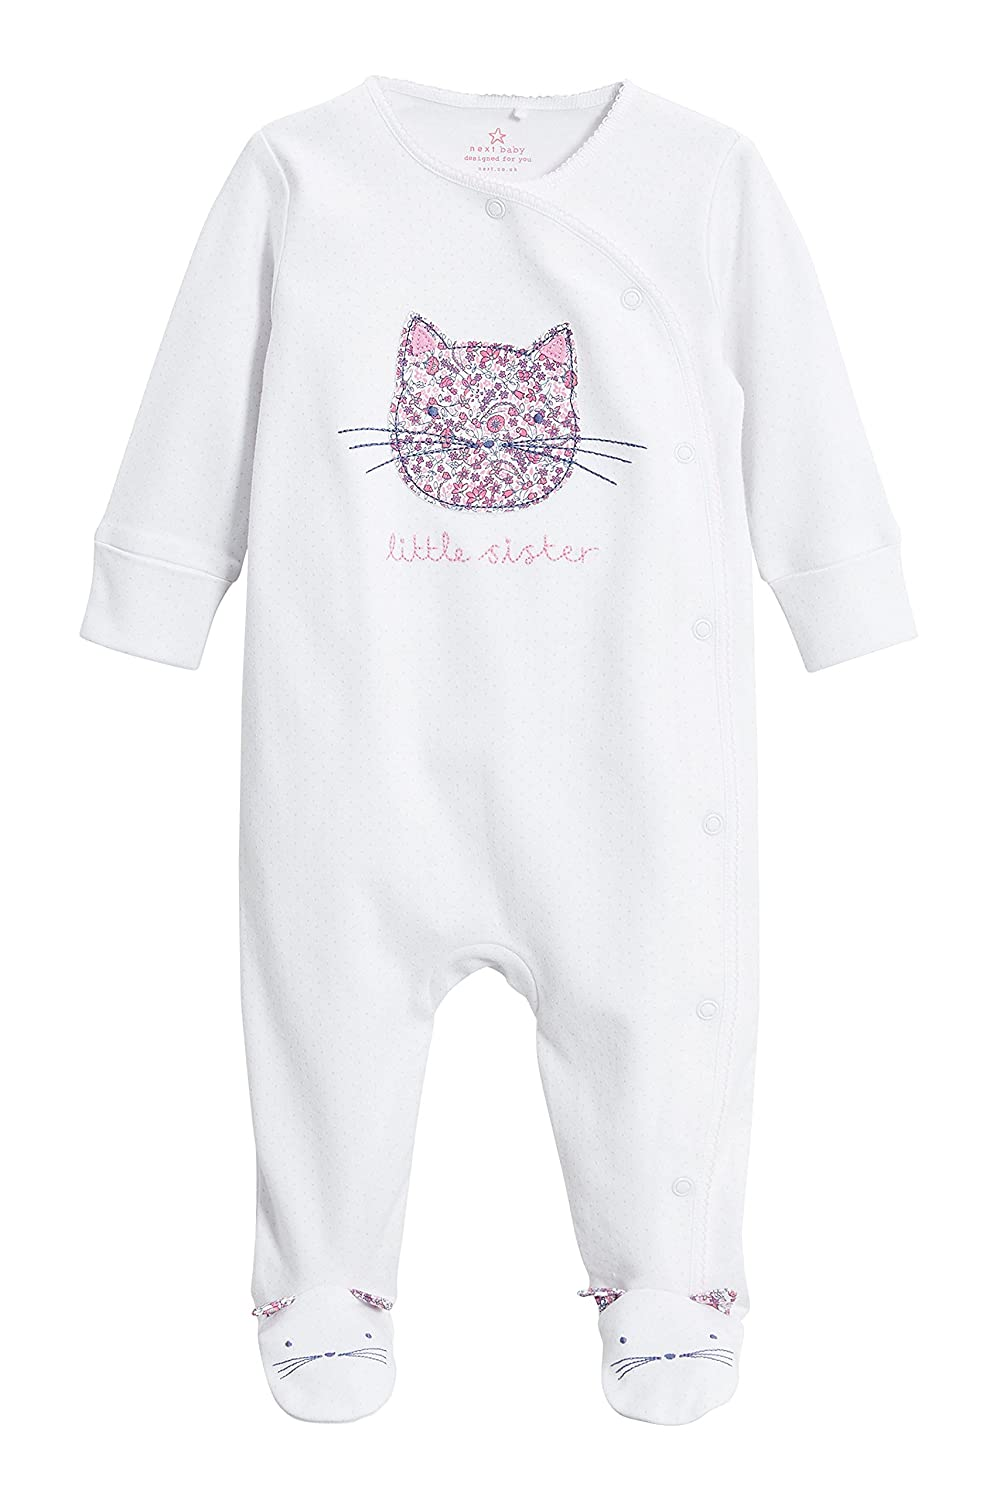 "next Baby Mä dchen ""Little Sister"" Pyjama Set"